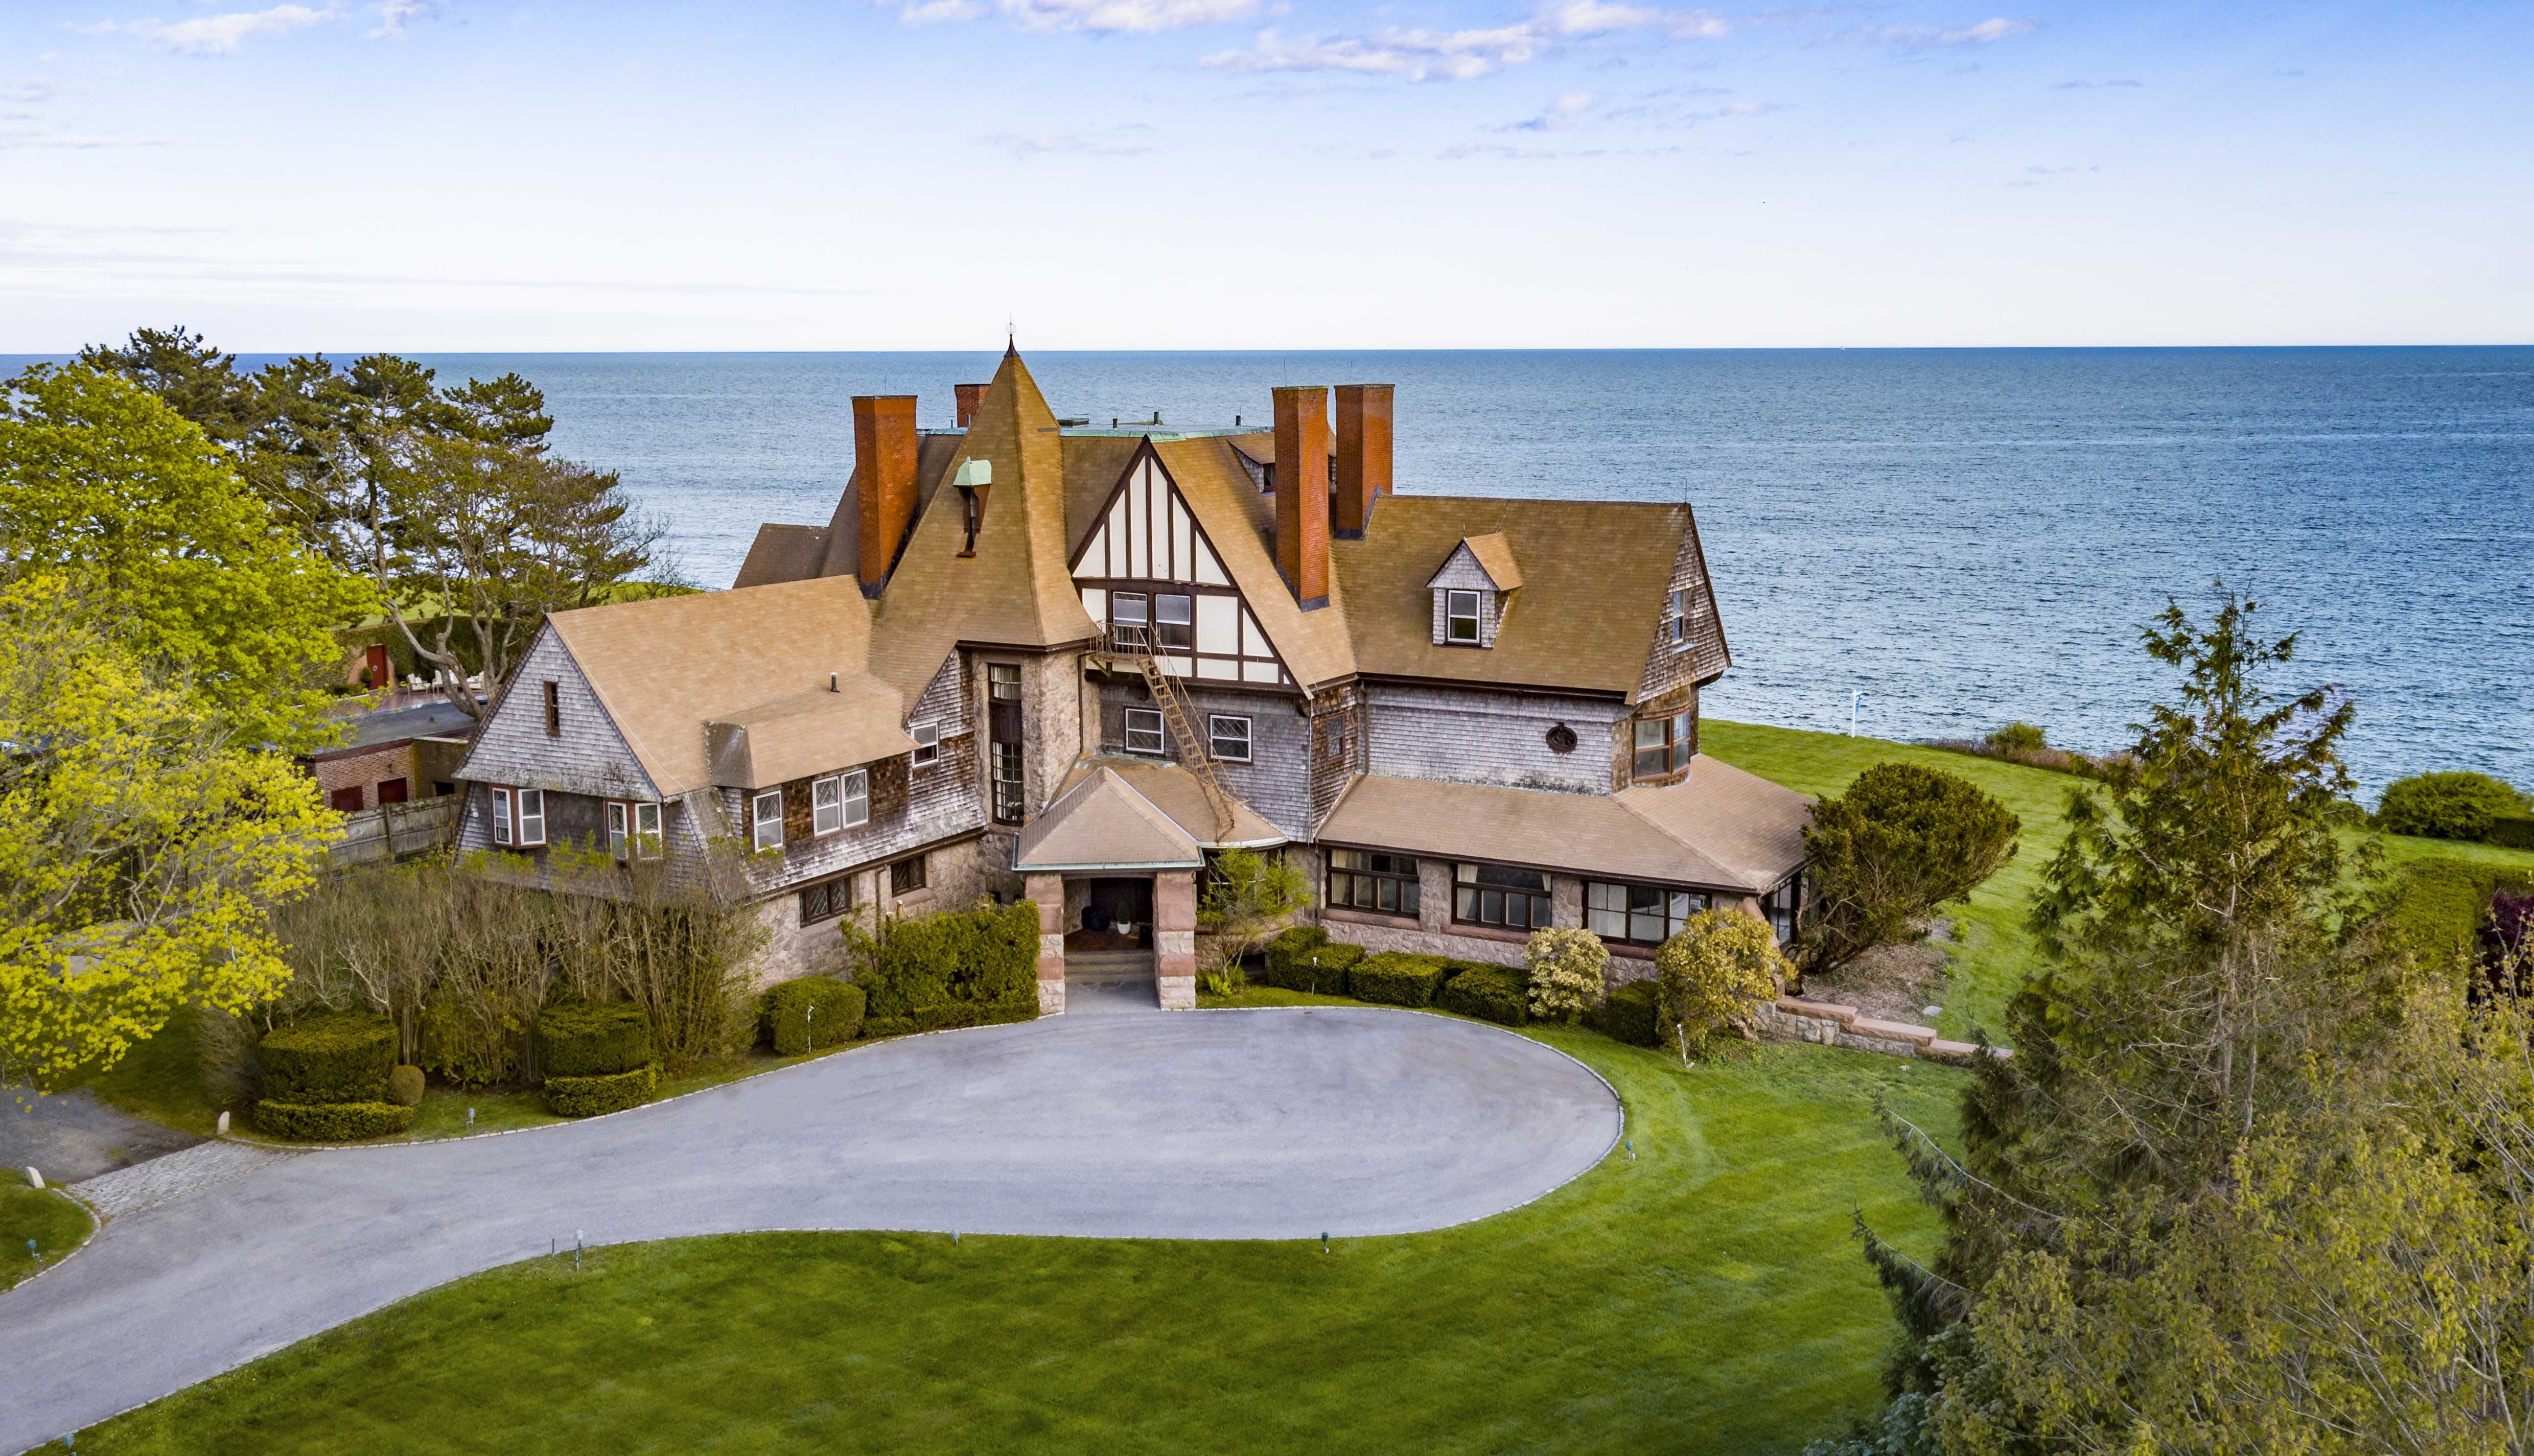 LILA DELMAN REAL ESTATE SELLS NEWPORT'S ICONIC OCEANFRONT ESTATE 'MIDCLIFF' FOR $6.2M, MARKING ONE OF THE YEAR'S TOP 3 SALES STATEWIDE*